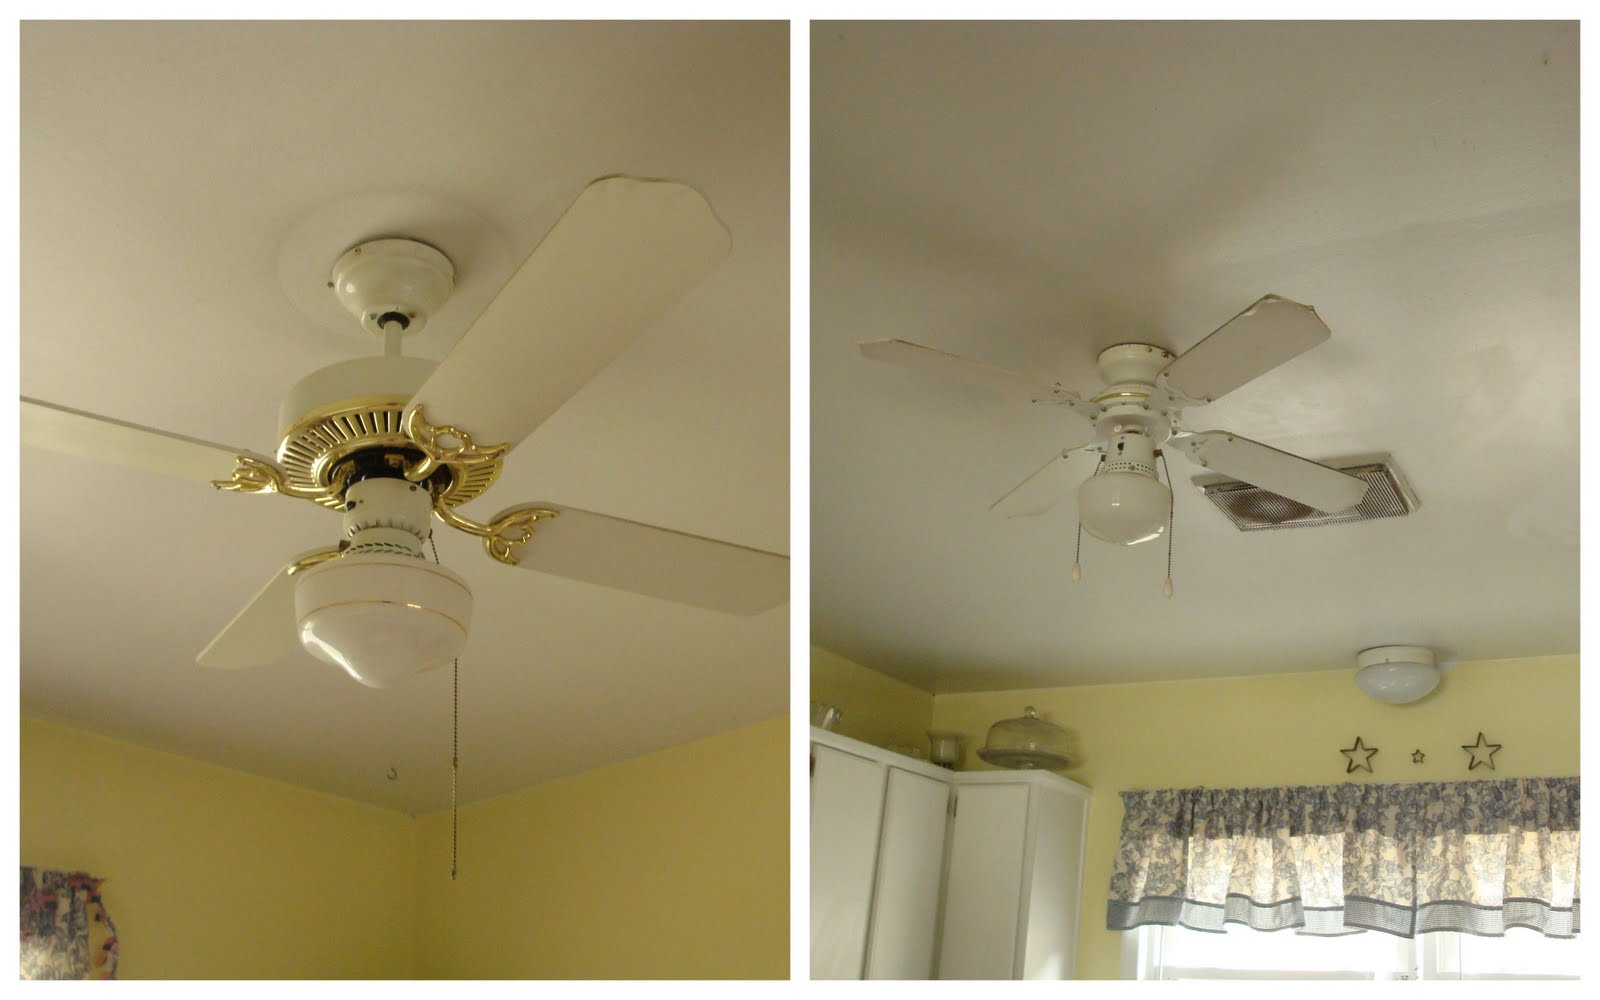 Ceiling Fans For Dining Area: Dining Table: Ceiling Fan Over Dining Table